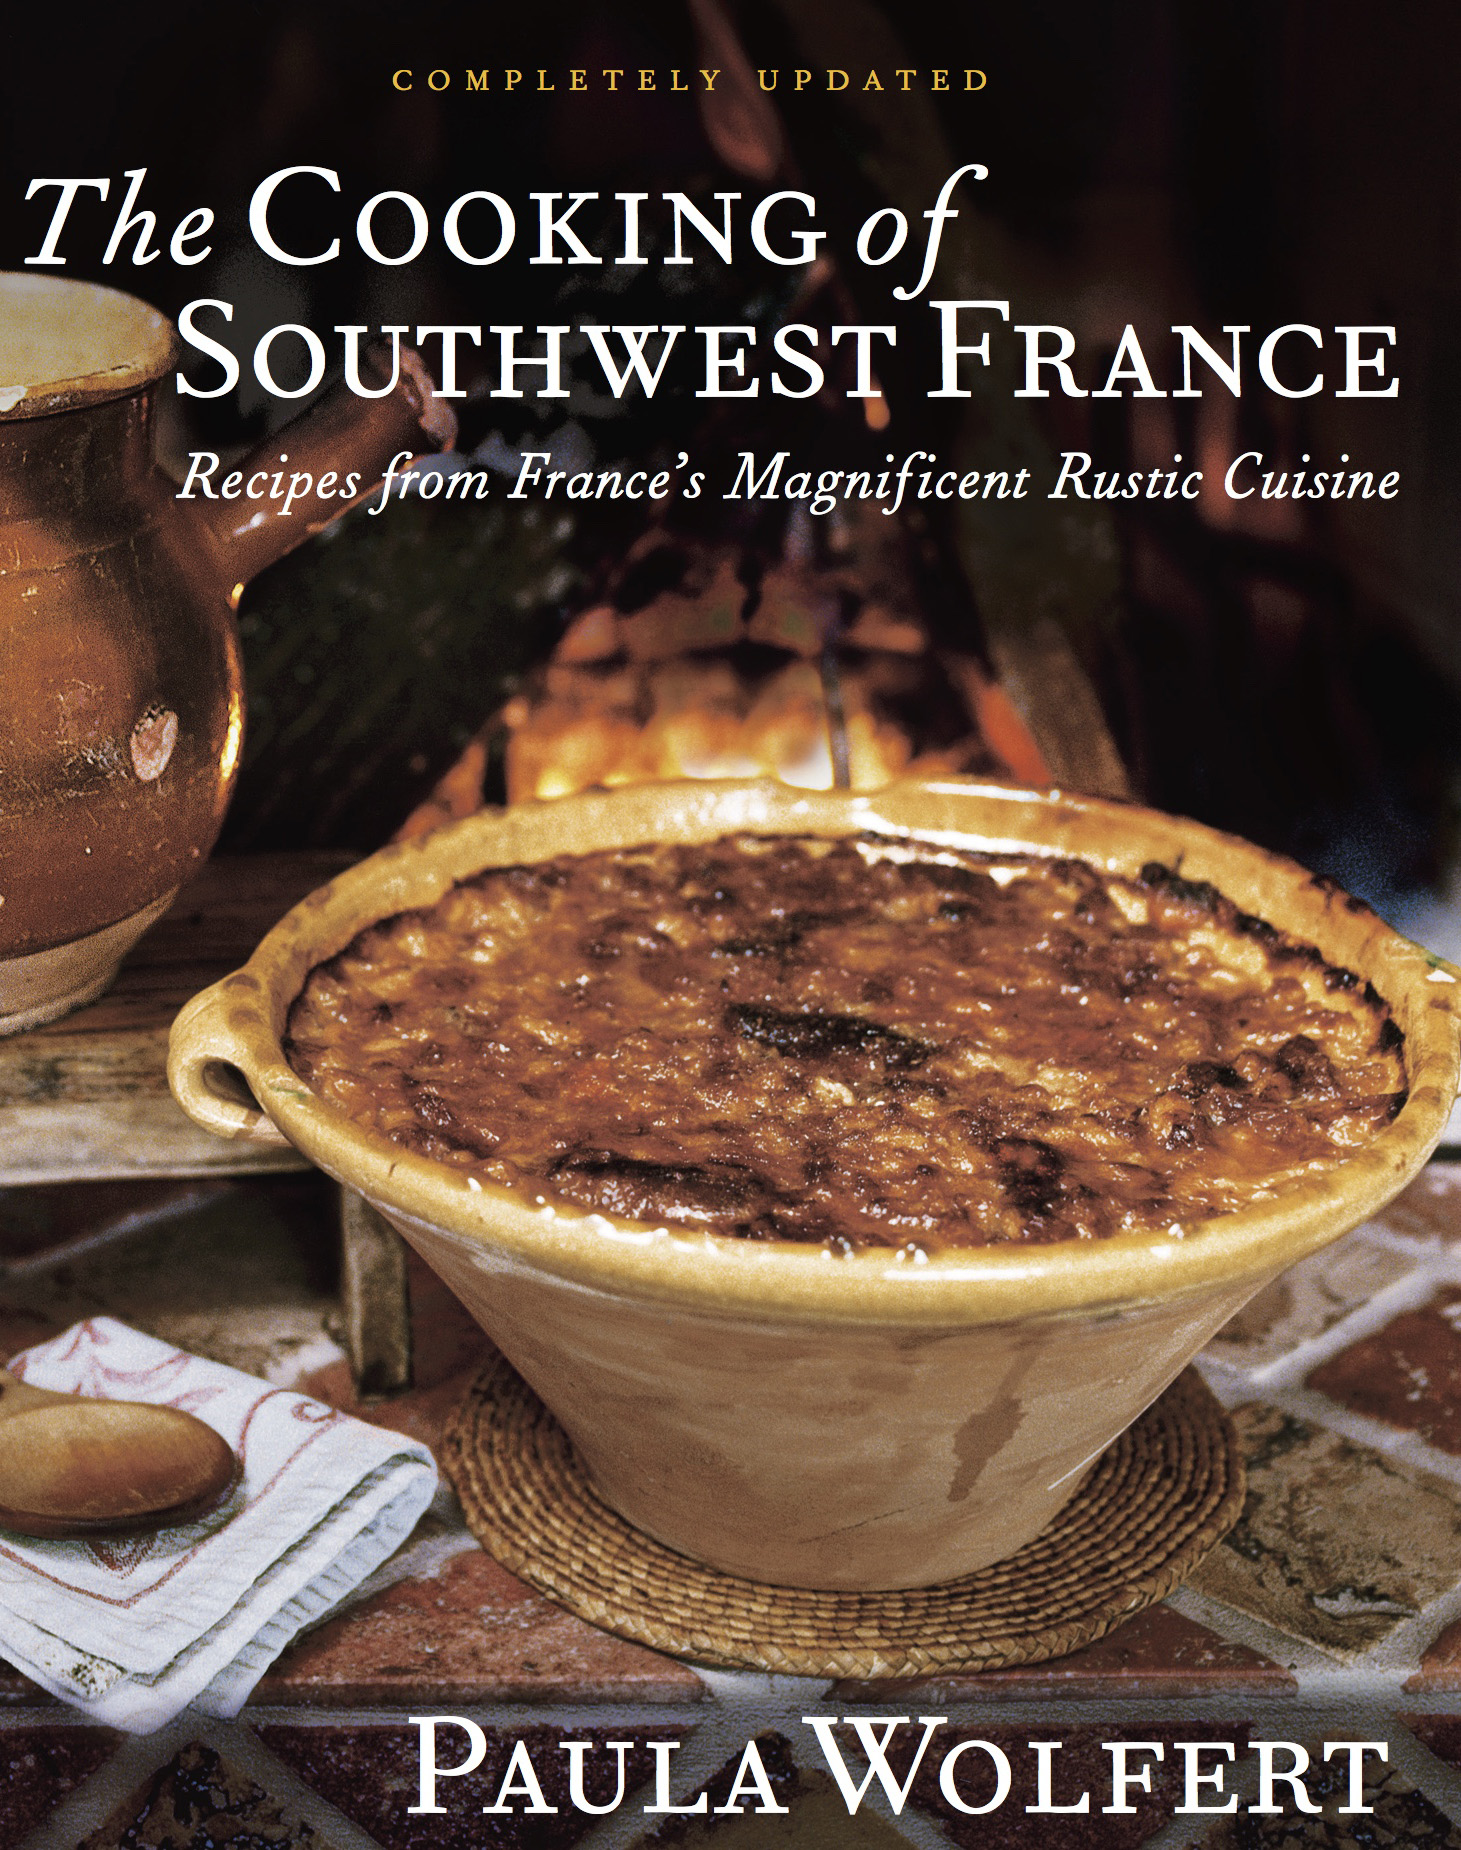 HMH - The Cooking of South West France - 9780764576027.jpg